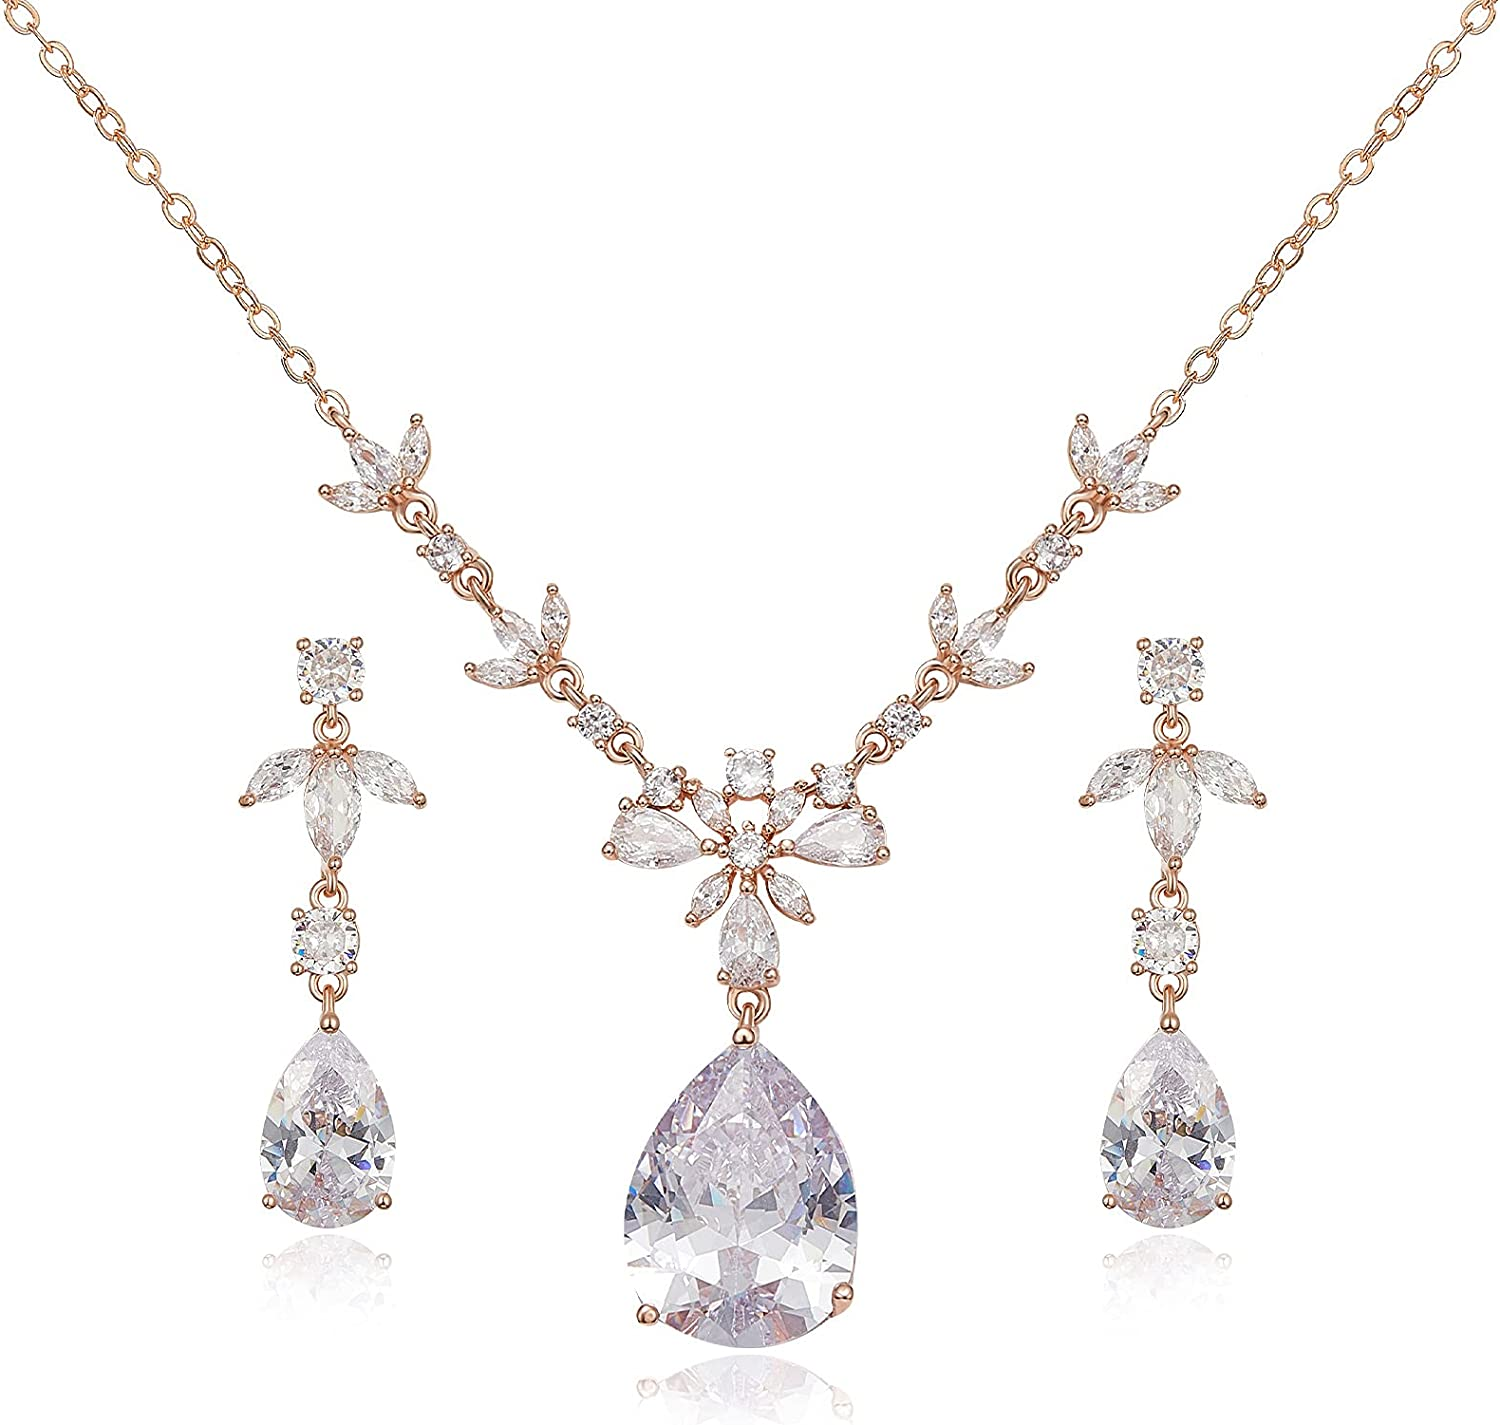 SWEETV Wedding Bridal Jewelry Sets for Brides, Bridesmaids, Teardrop Necklace Dangle Earring Bracelet Sets, Prom Jewelry Sets for Women Gifts